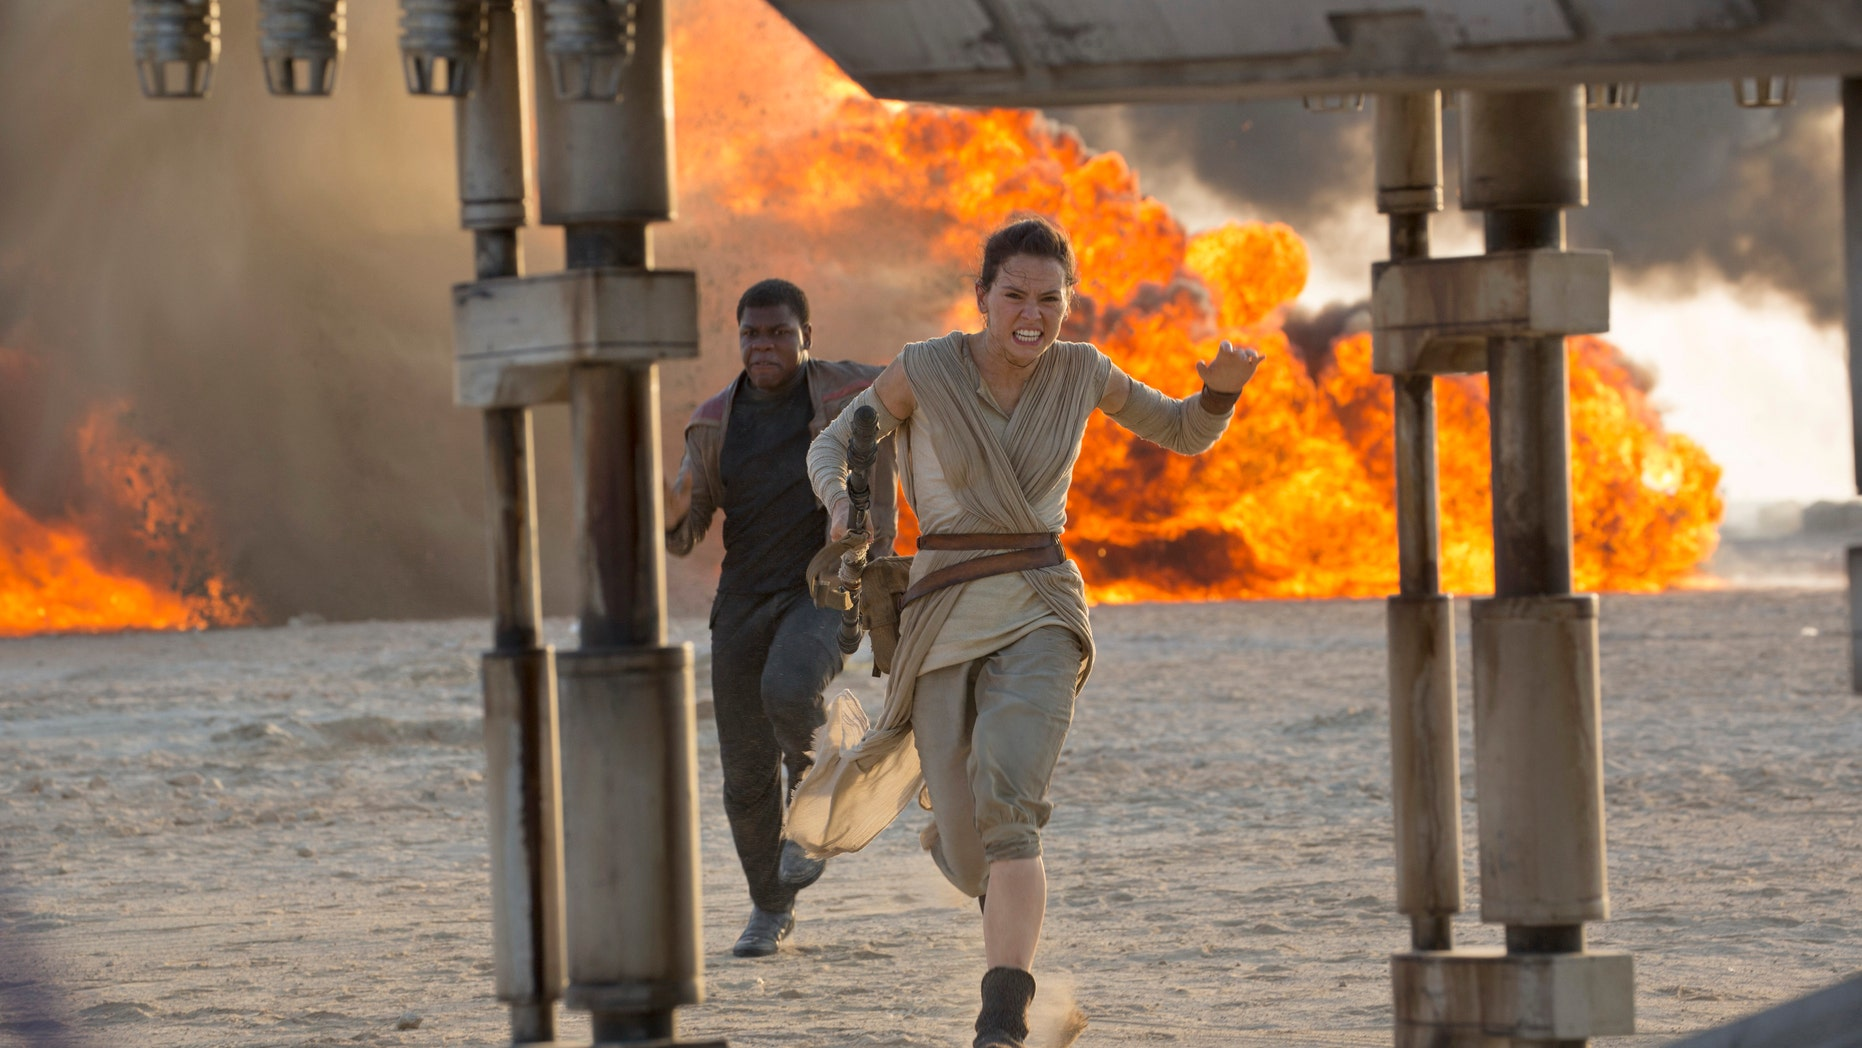 """A scene from the film, """"Star Wars: The Force Awakens,"""" directed by J.J. Abrams."""